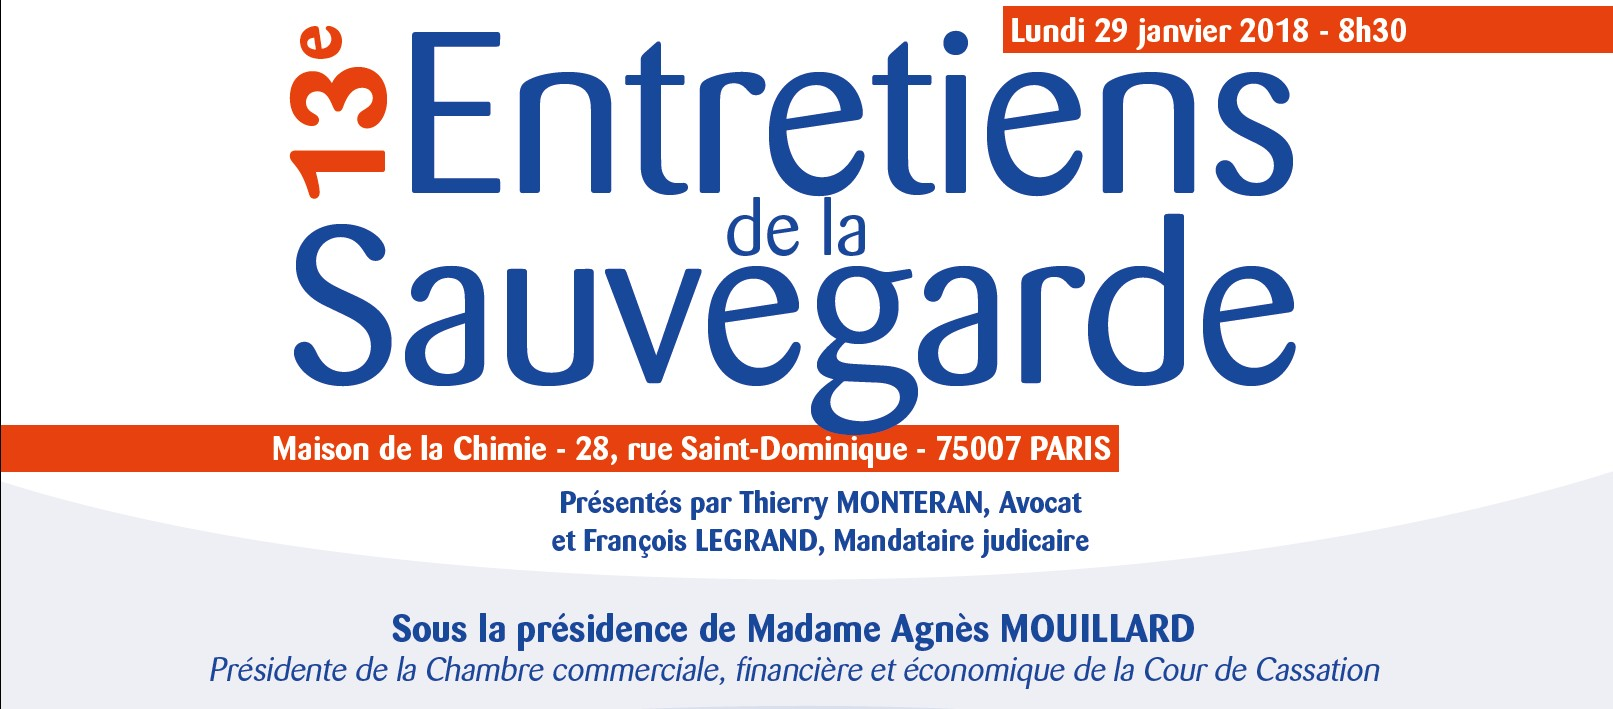 28 rue saint dominique maison de la chimie 28 rue saint for 28 rue saint dominique maison de la chimie